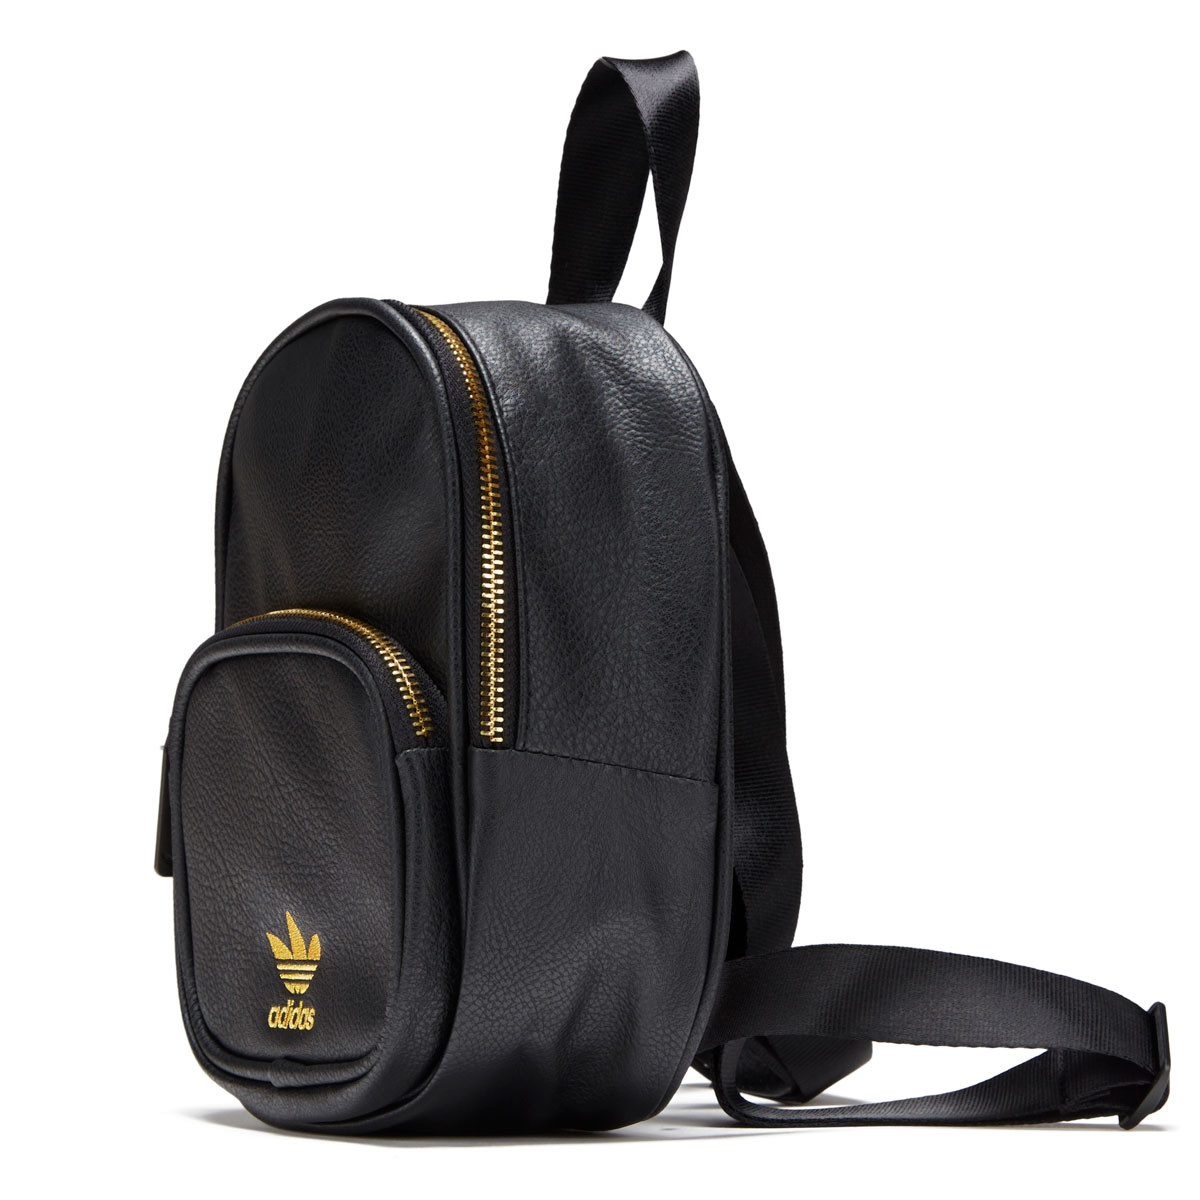 Adidas Originals Mini PU Leather Backpack - Black Gold 736ef7e7293df